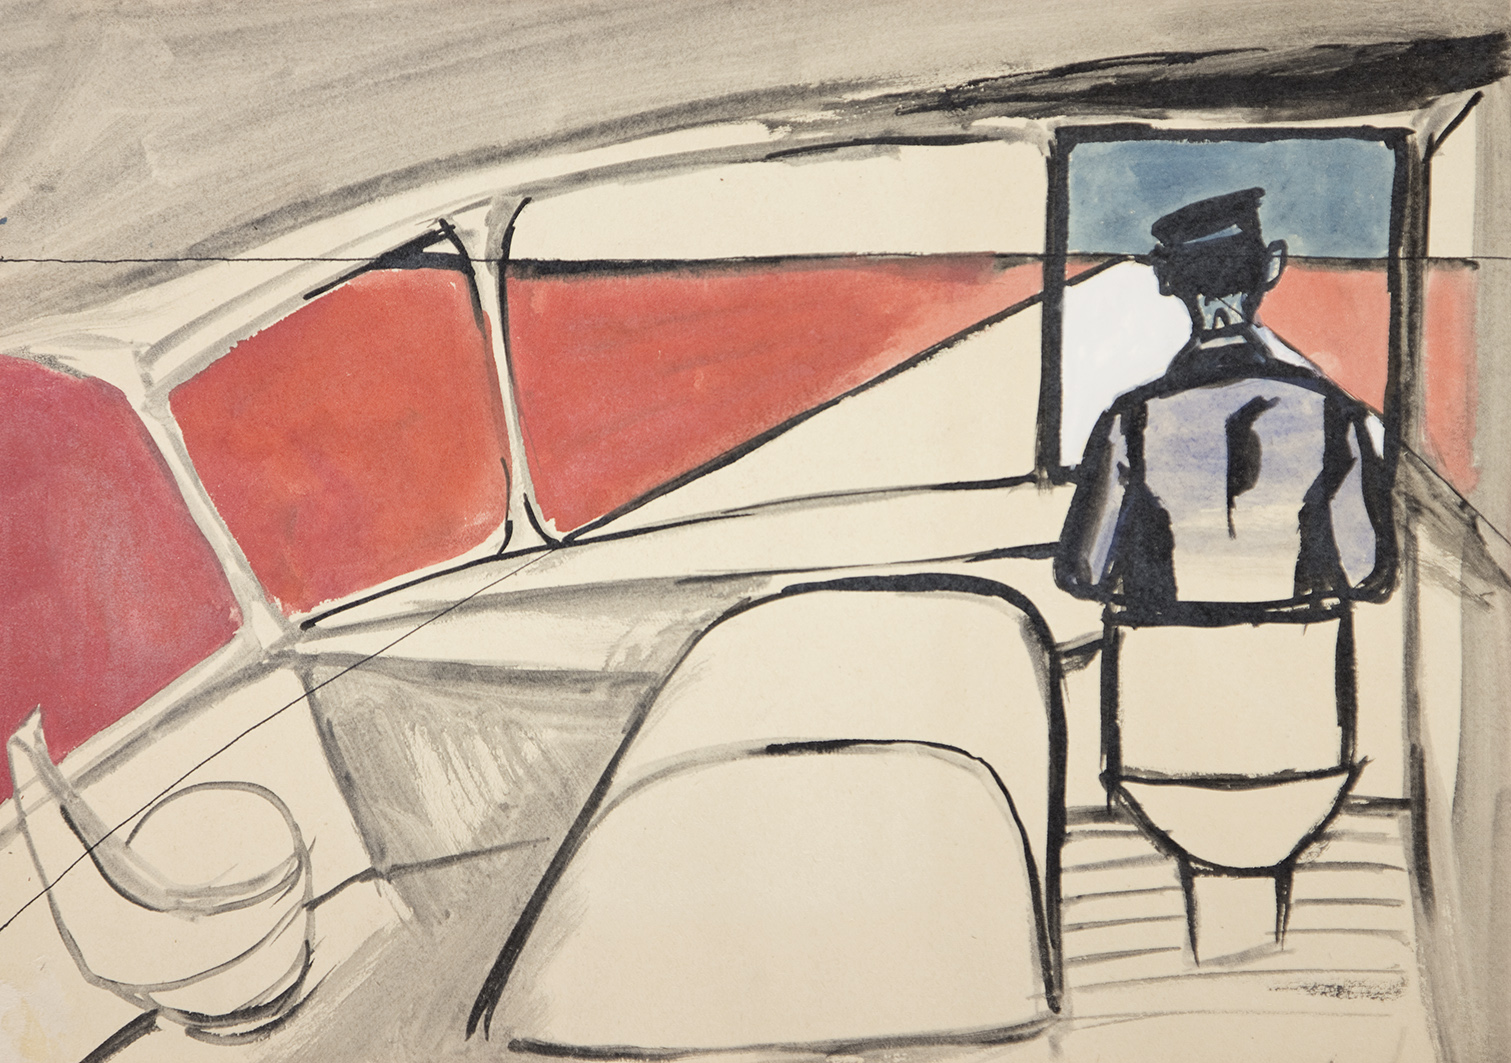 'Chauffeur no. 1144' Andrzej Wroblewski Watercolour, ink, paper, 29.7 x 42 cm, not dated Private collection, courtesy of the Andrzej Wróblewski Foundation www.andrzejwroblewski (Exhibited in DE. FI. CIEN. CY at Drawing Room, 2015)